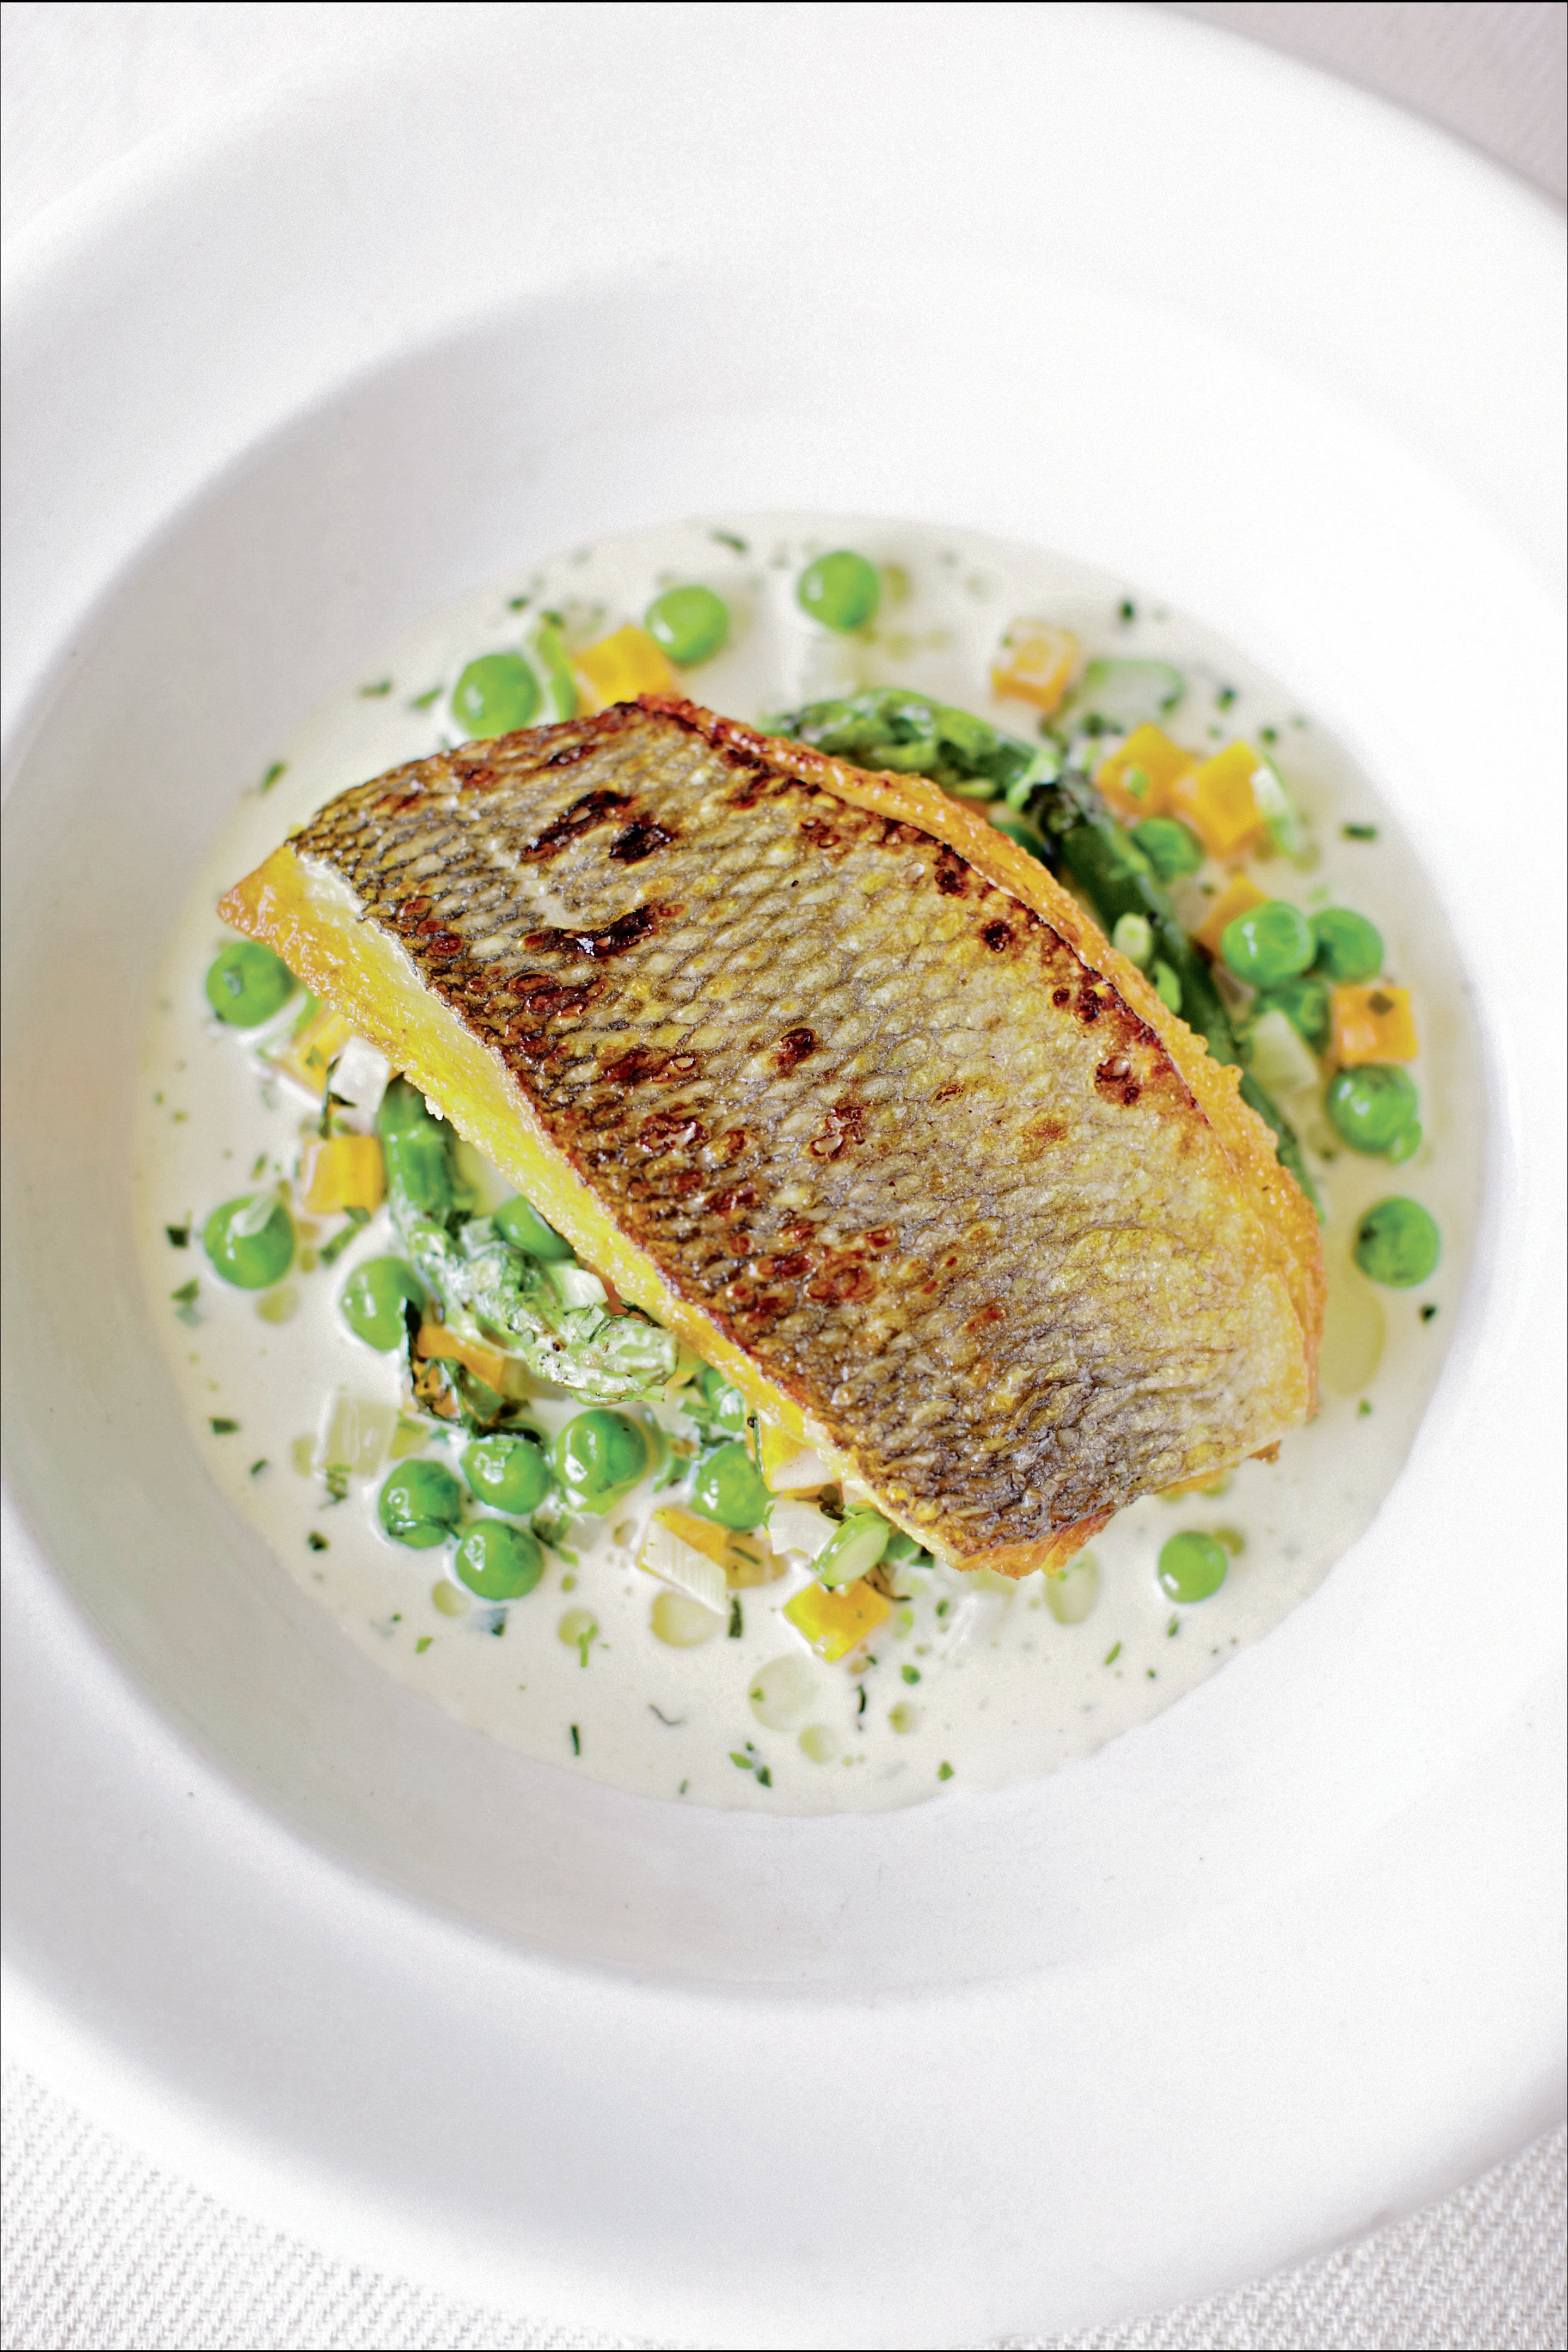 Pan-fried bream with spring vegetable nage